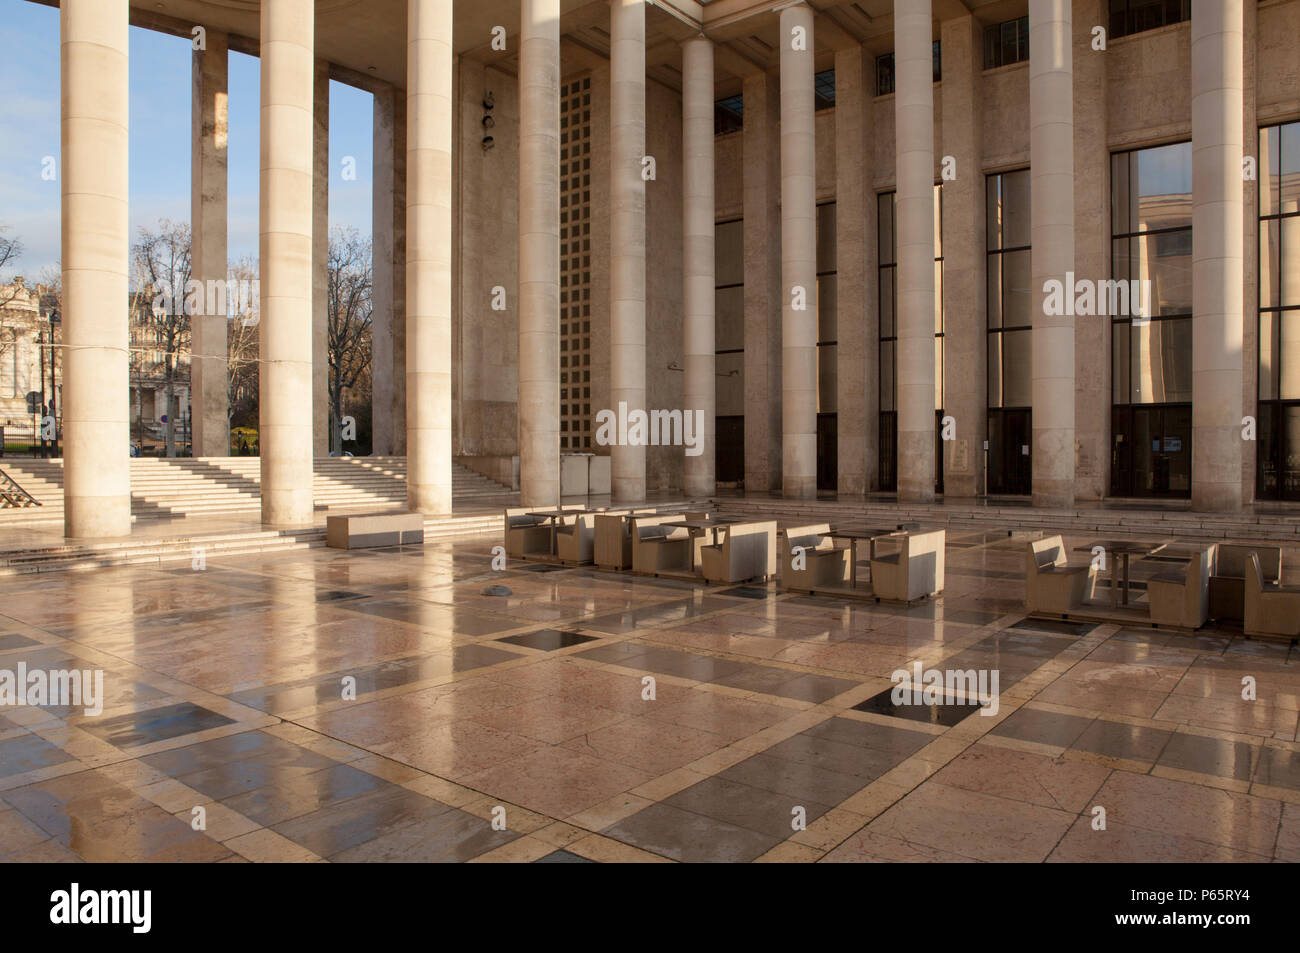 The 1937 Art Deco Design Of The Palais De Tokyo Which Houses The Museum Of Modern Art In Paris France Stock Photo Alamy